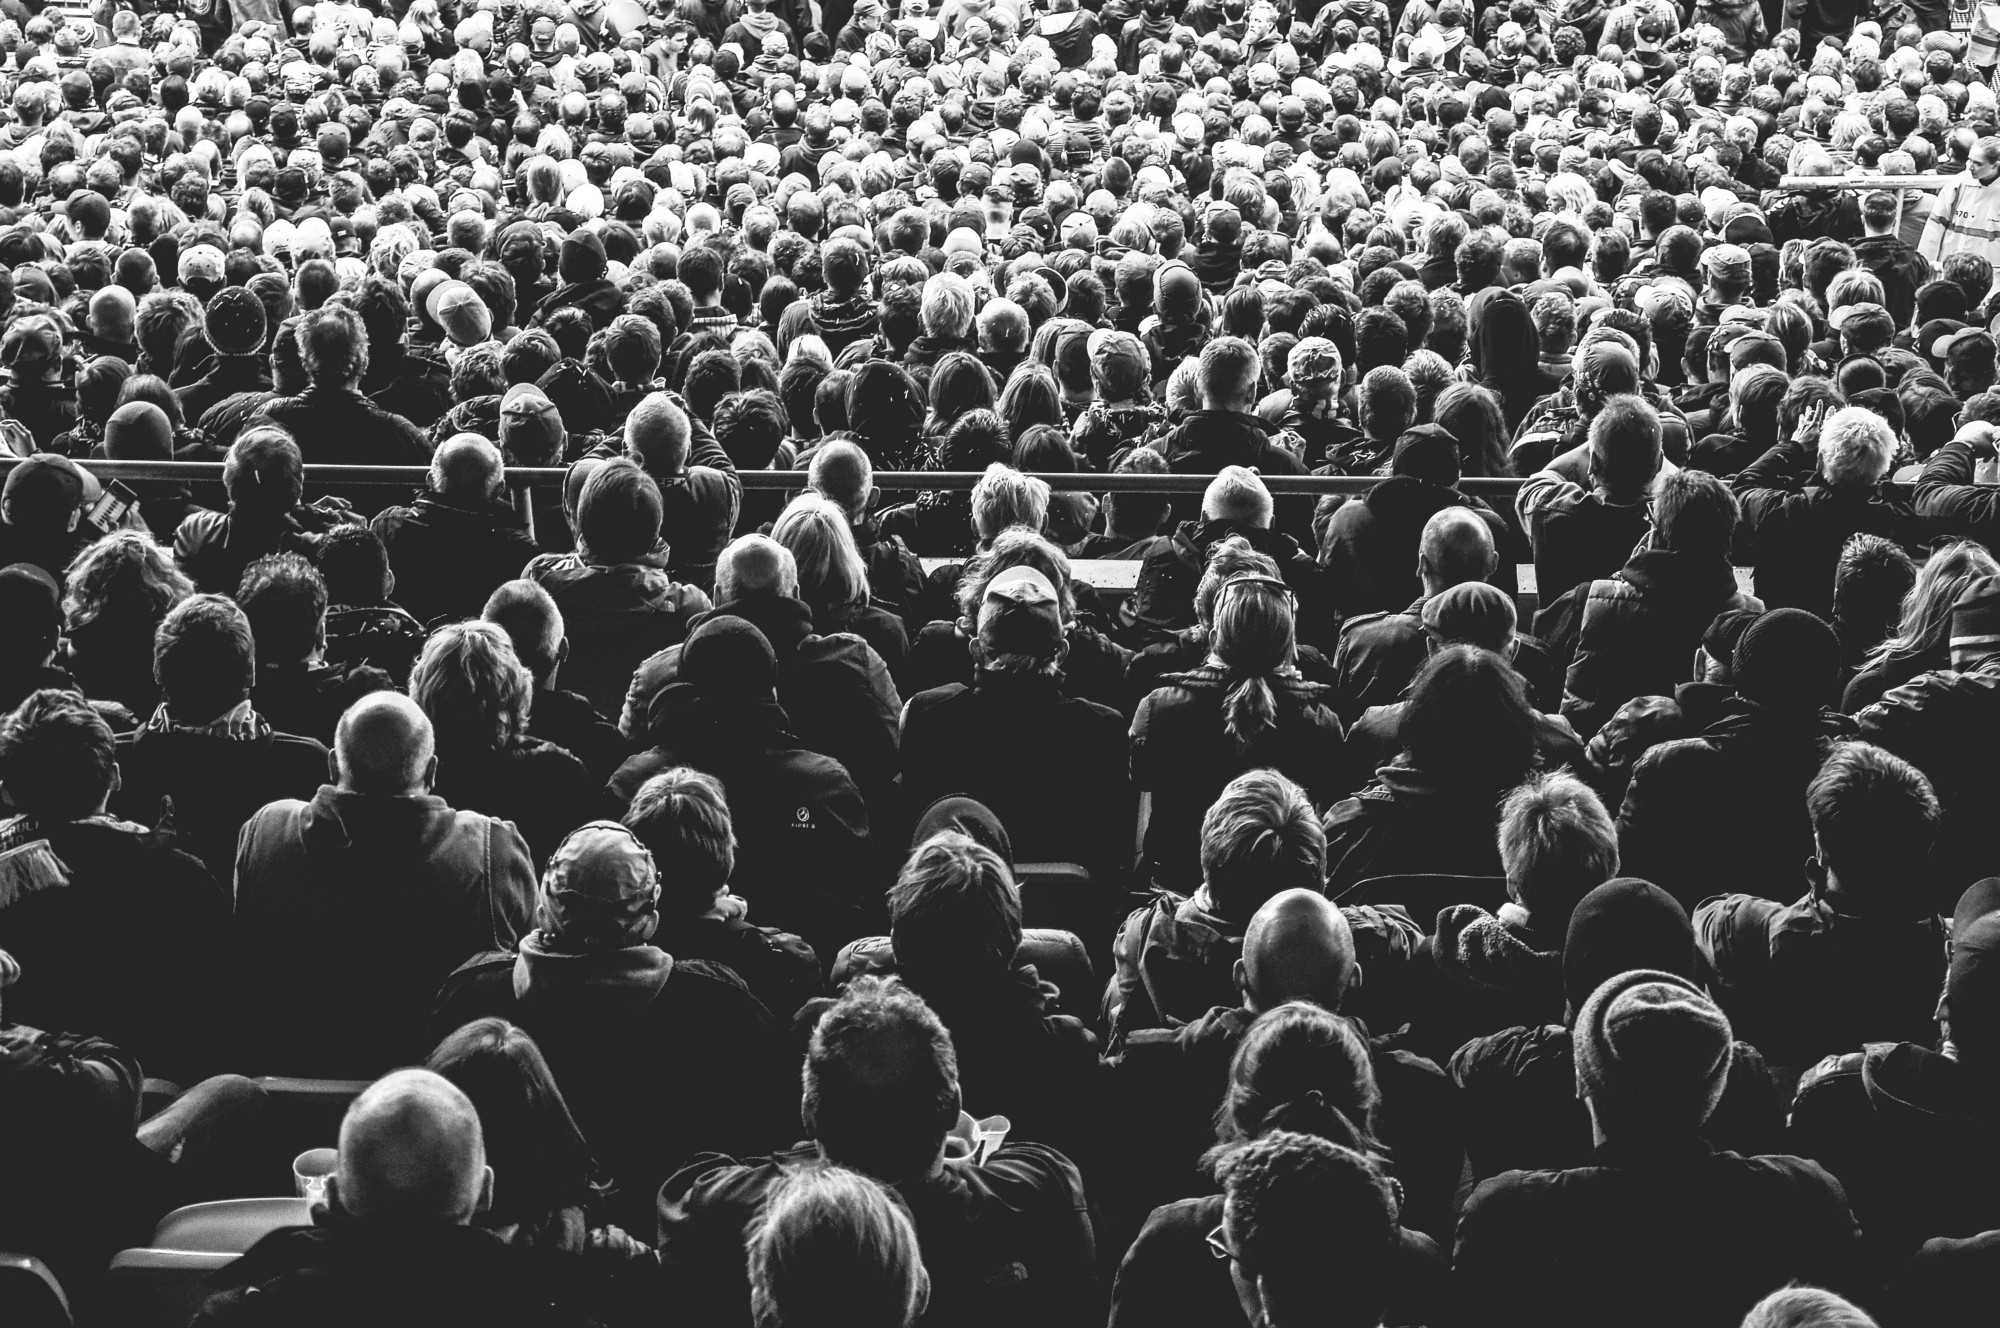 Black and white photo of a large audience